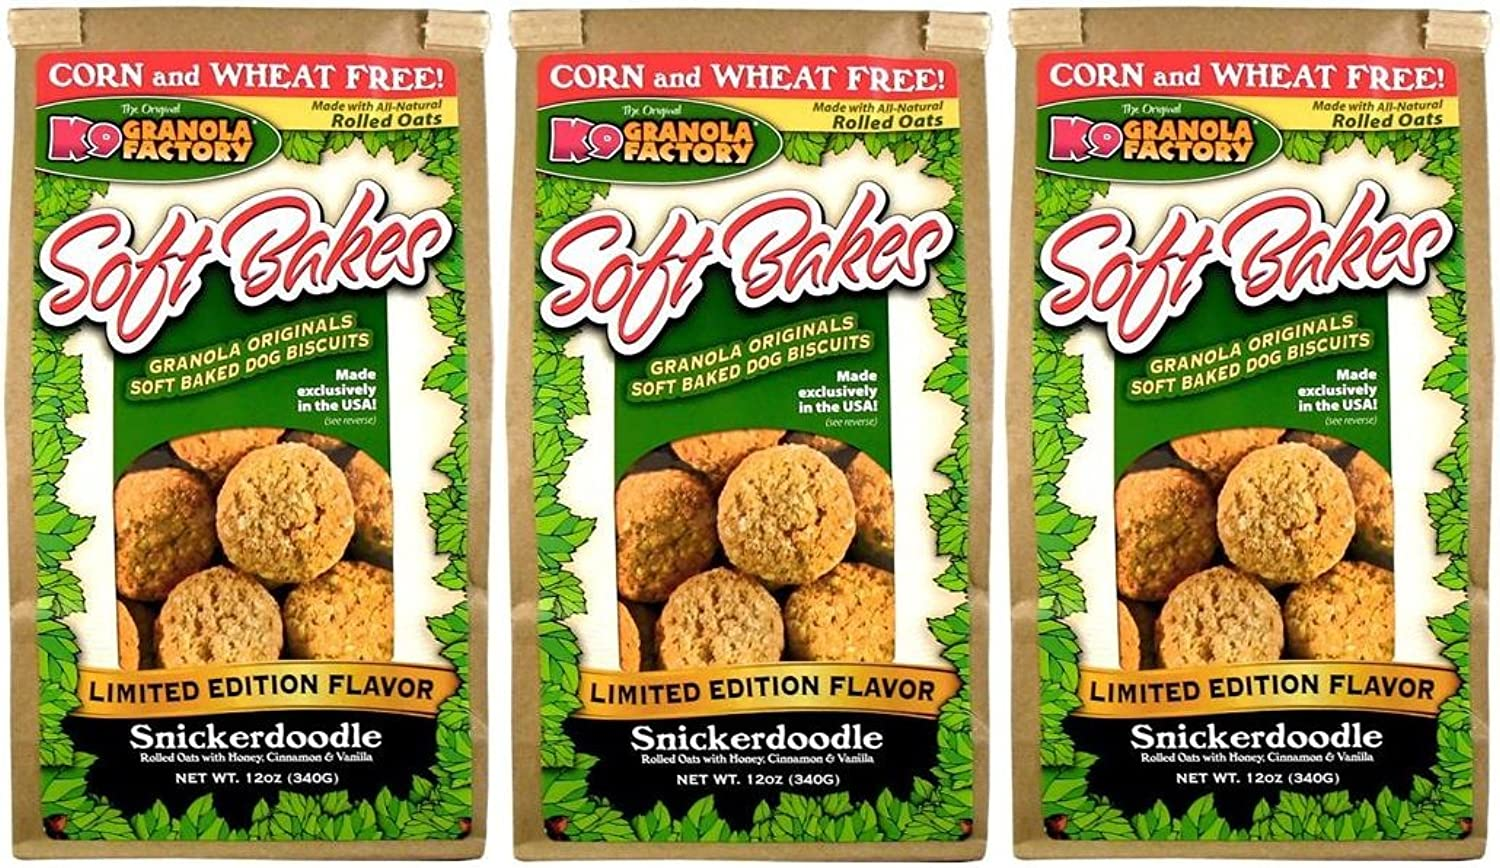 K9 Granola Factory Soft Bakes Limited Edition Snickerdodle, 12oz (3 Pack)